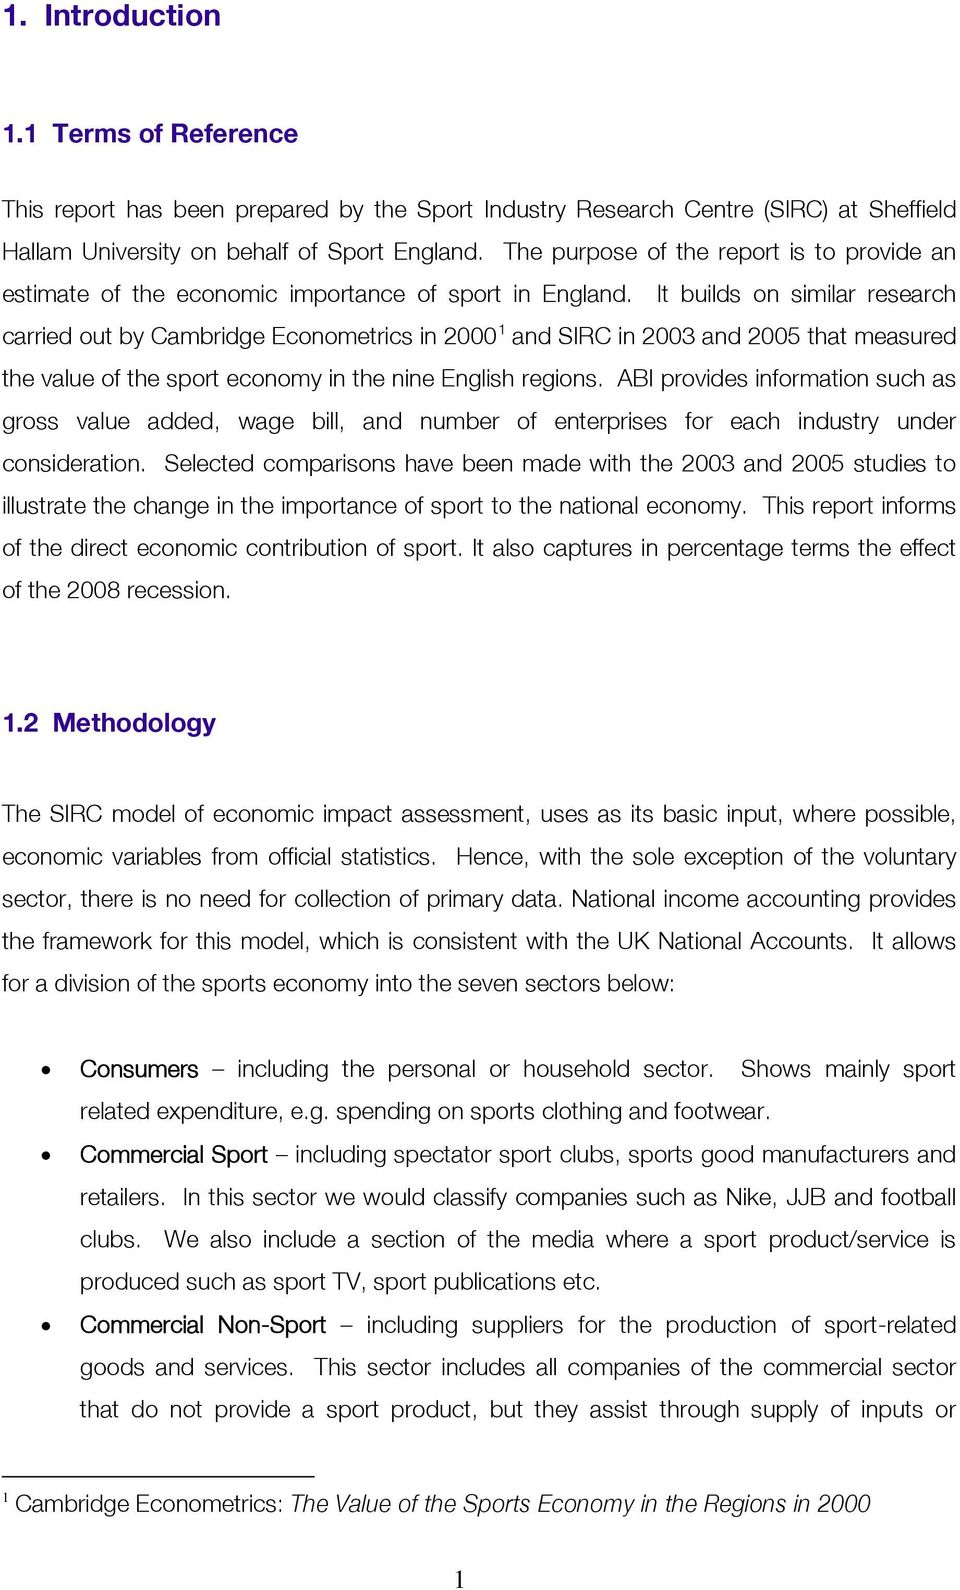 It builds on similar research carried out by Cambridge Econometrics in 2000 1 and SIRC in 2003 and 2005 that measured the value of the sport economy in the nine English regions.